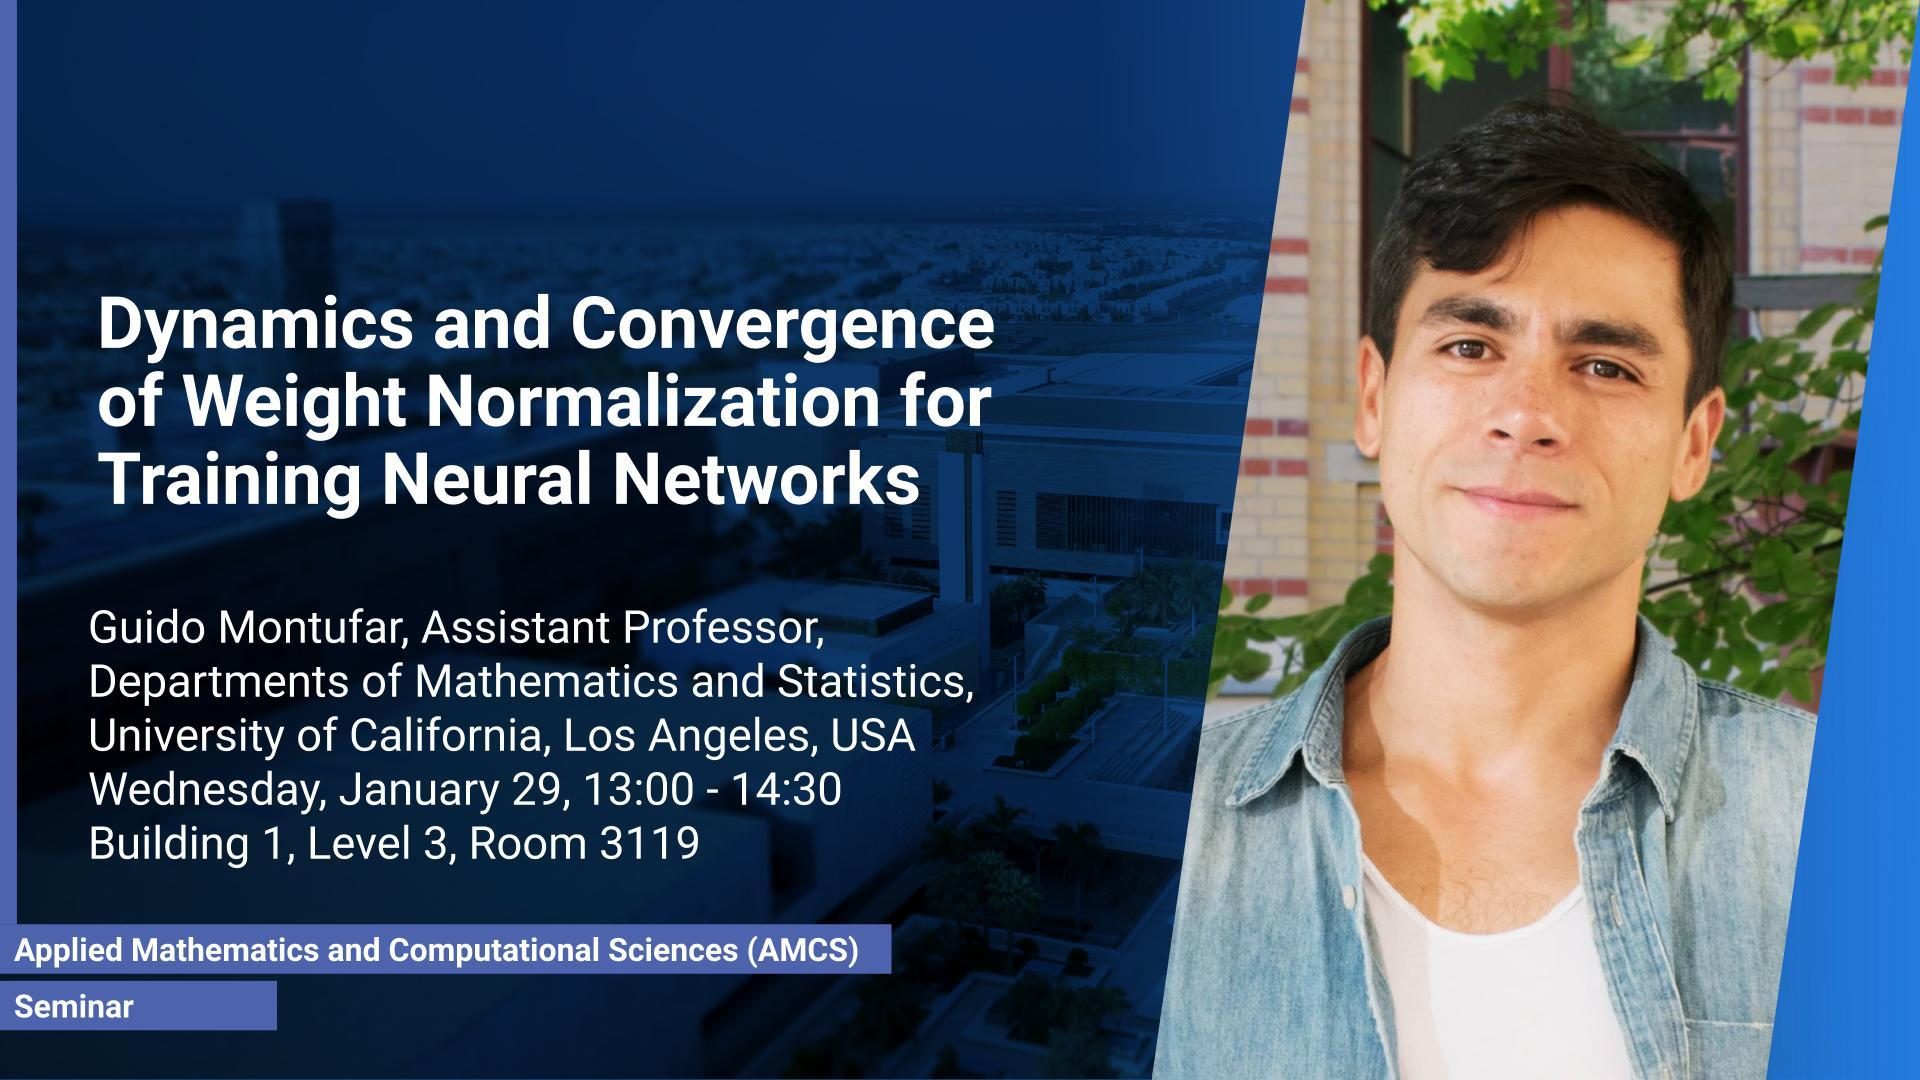 KAUST CEMSE AMCS Seminar Guido Montufar Dynamics and Convergence of Weight Normalization for Training Neural Networks